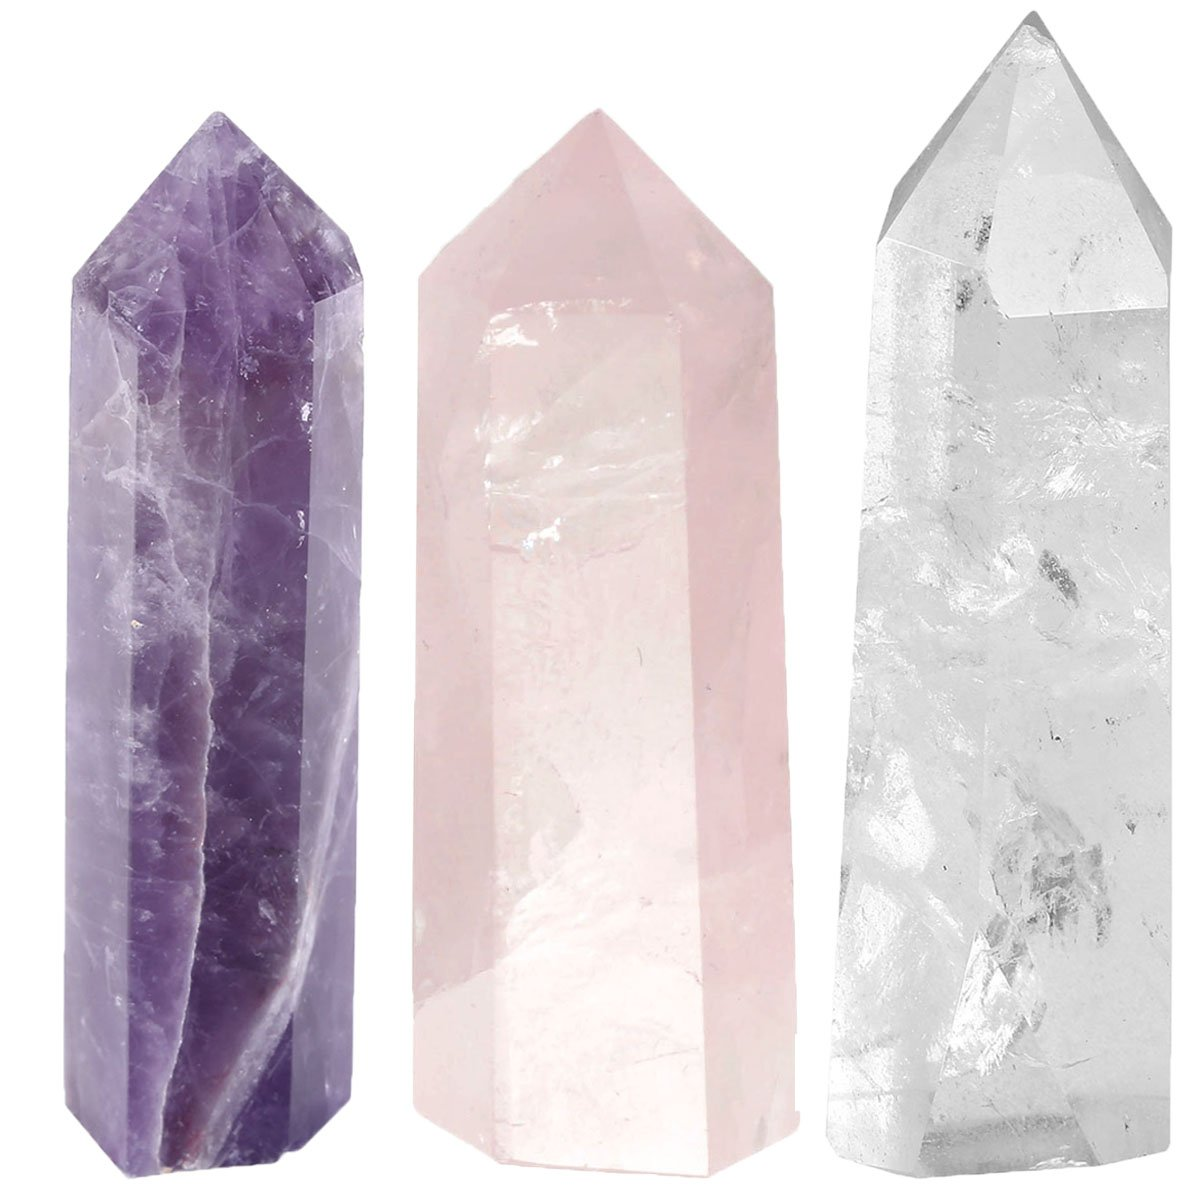 JSDDE 1.5-2'' Amethyst Rose Quartz Rock Crystal Quartz Specimen Tumbled Polished Healing Crystal Wands Point 6 Facet Reiki Chakra Meditation Therapy Stones